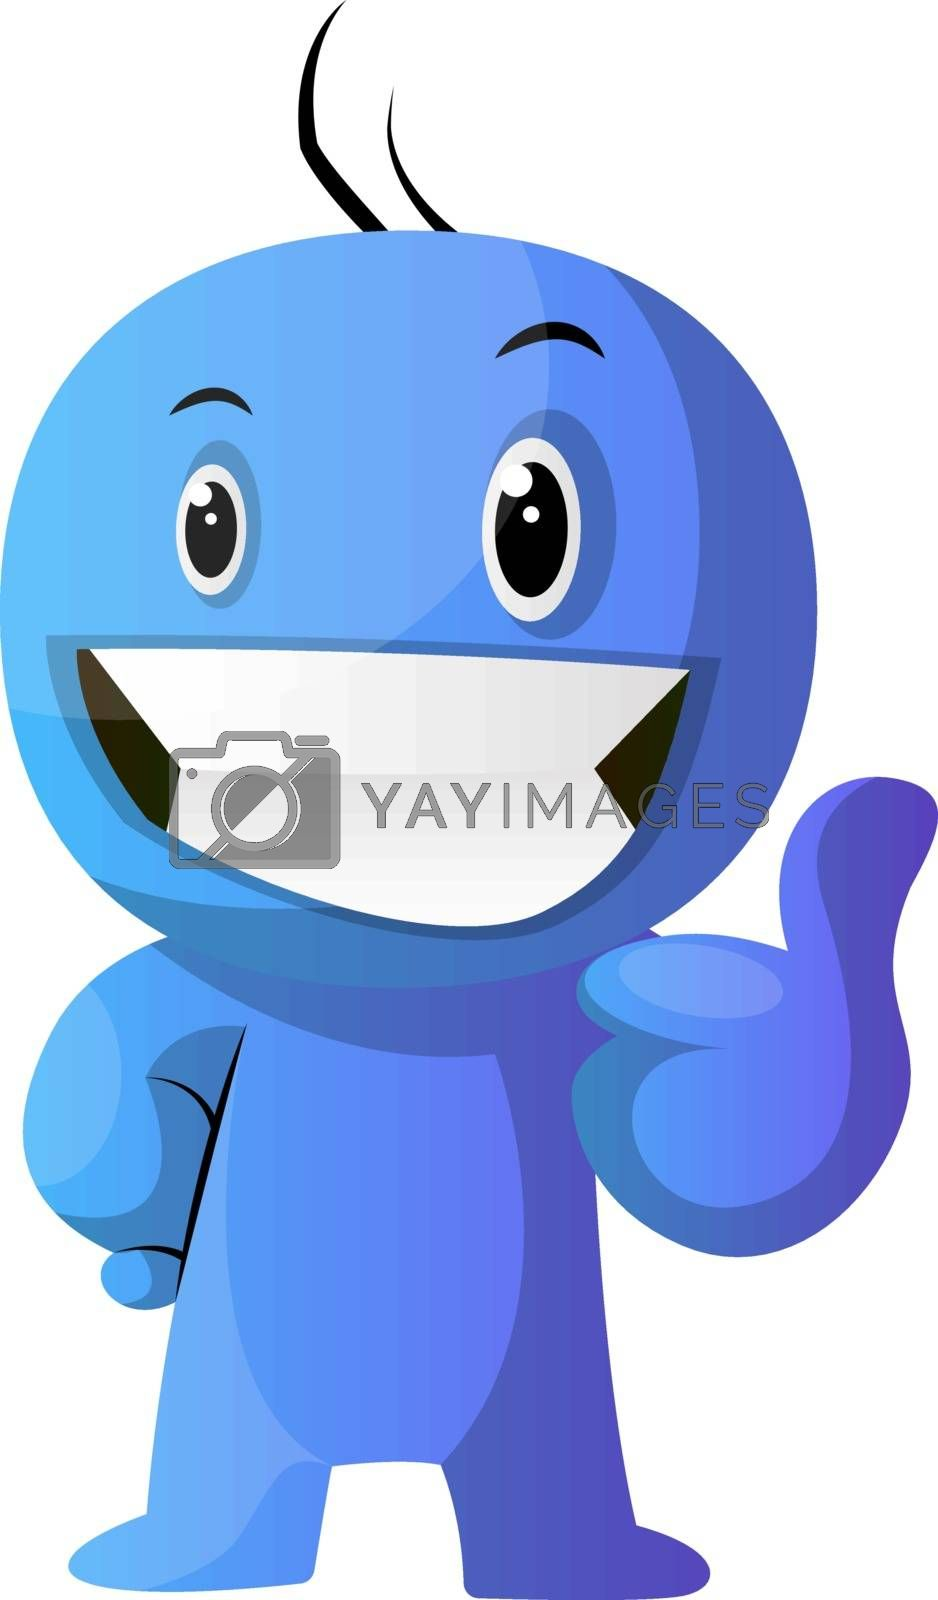 Royalty free image of Blue cartoon caracter positive illustration vector on white back by Morphart